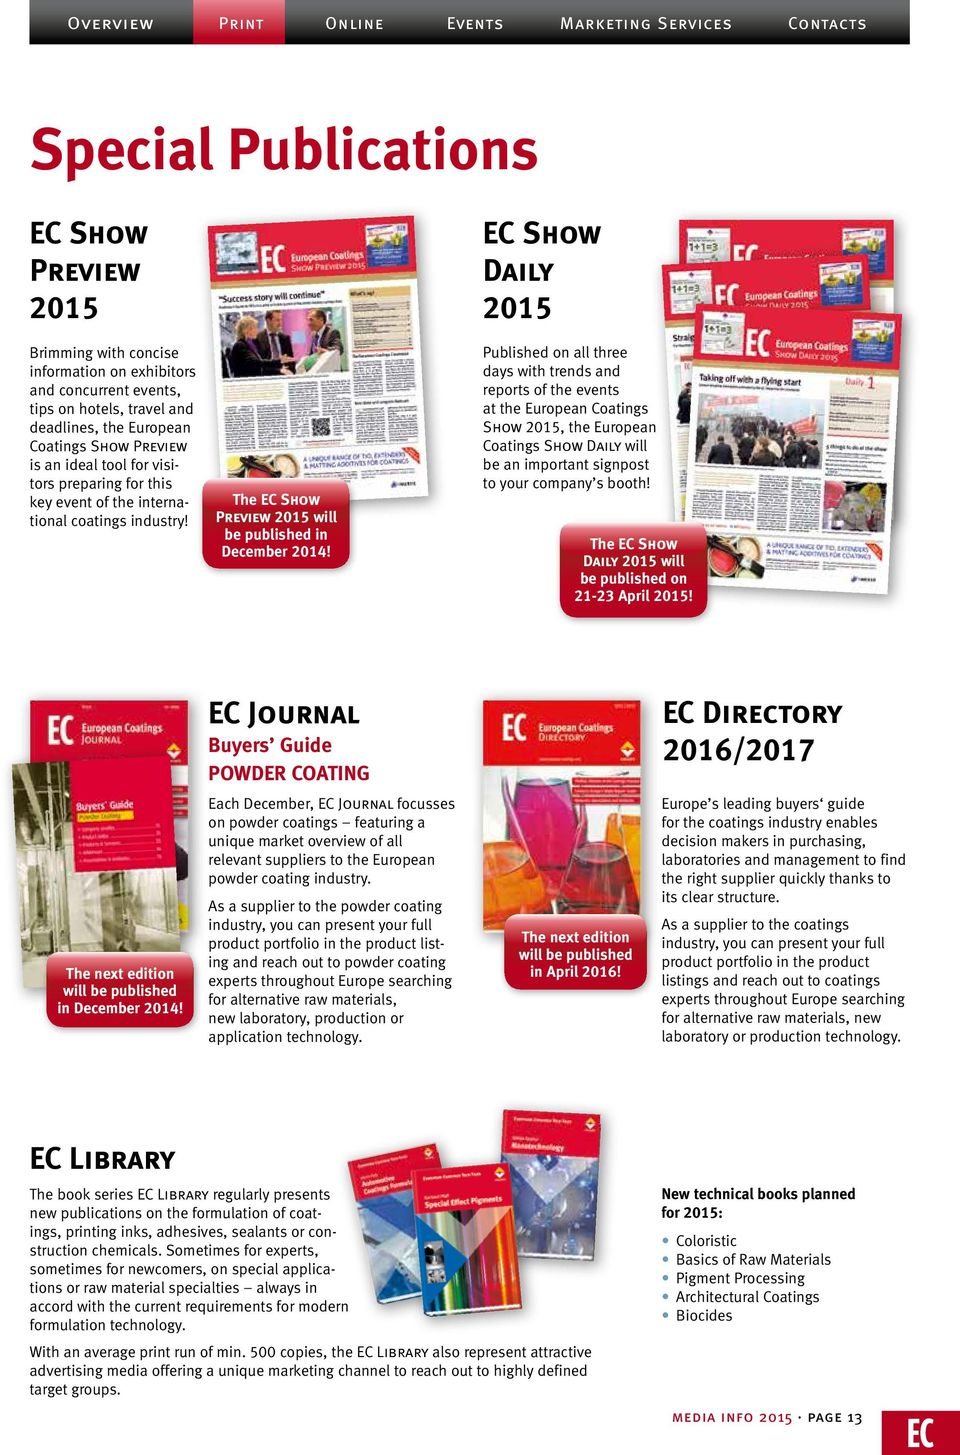 EC Show Daily 2015 Published on all three days with trends and reports of the events at the European Coatings Show 2015, the European Coatings Show Daily will be an important signpost to your company